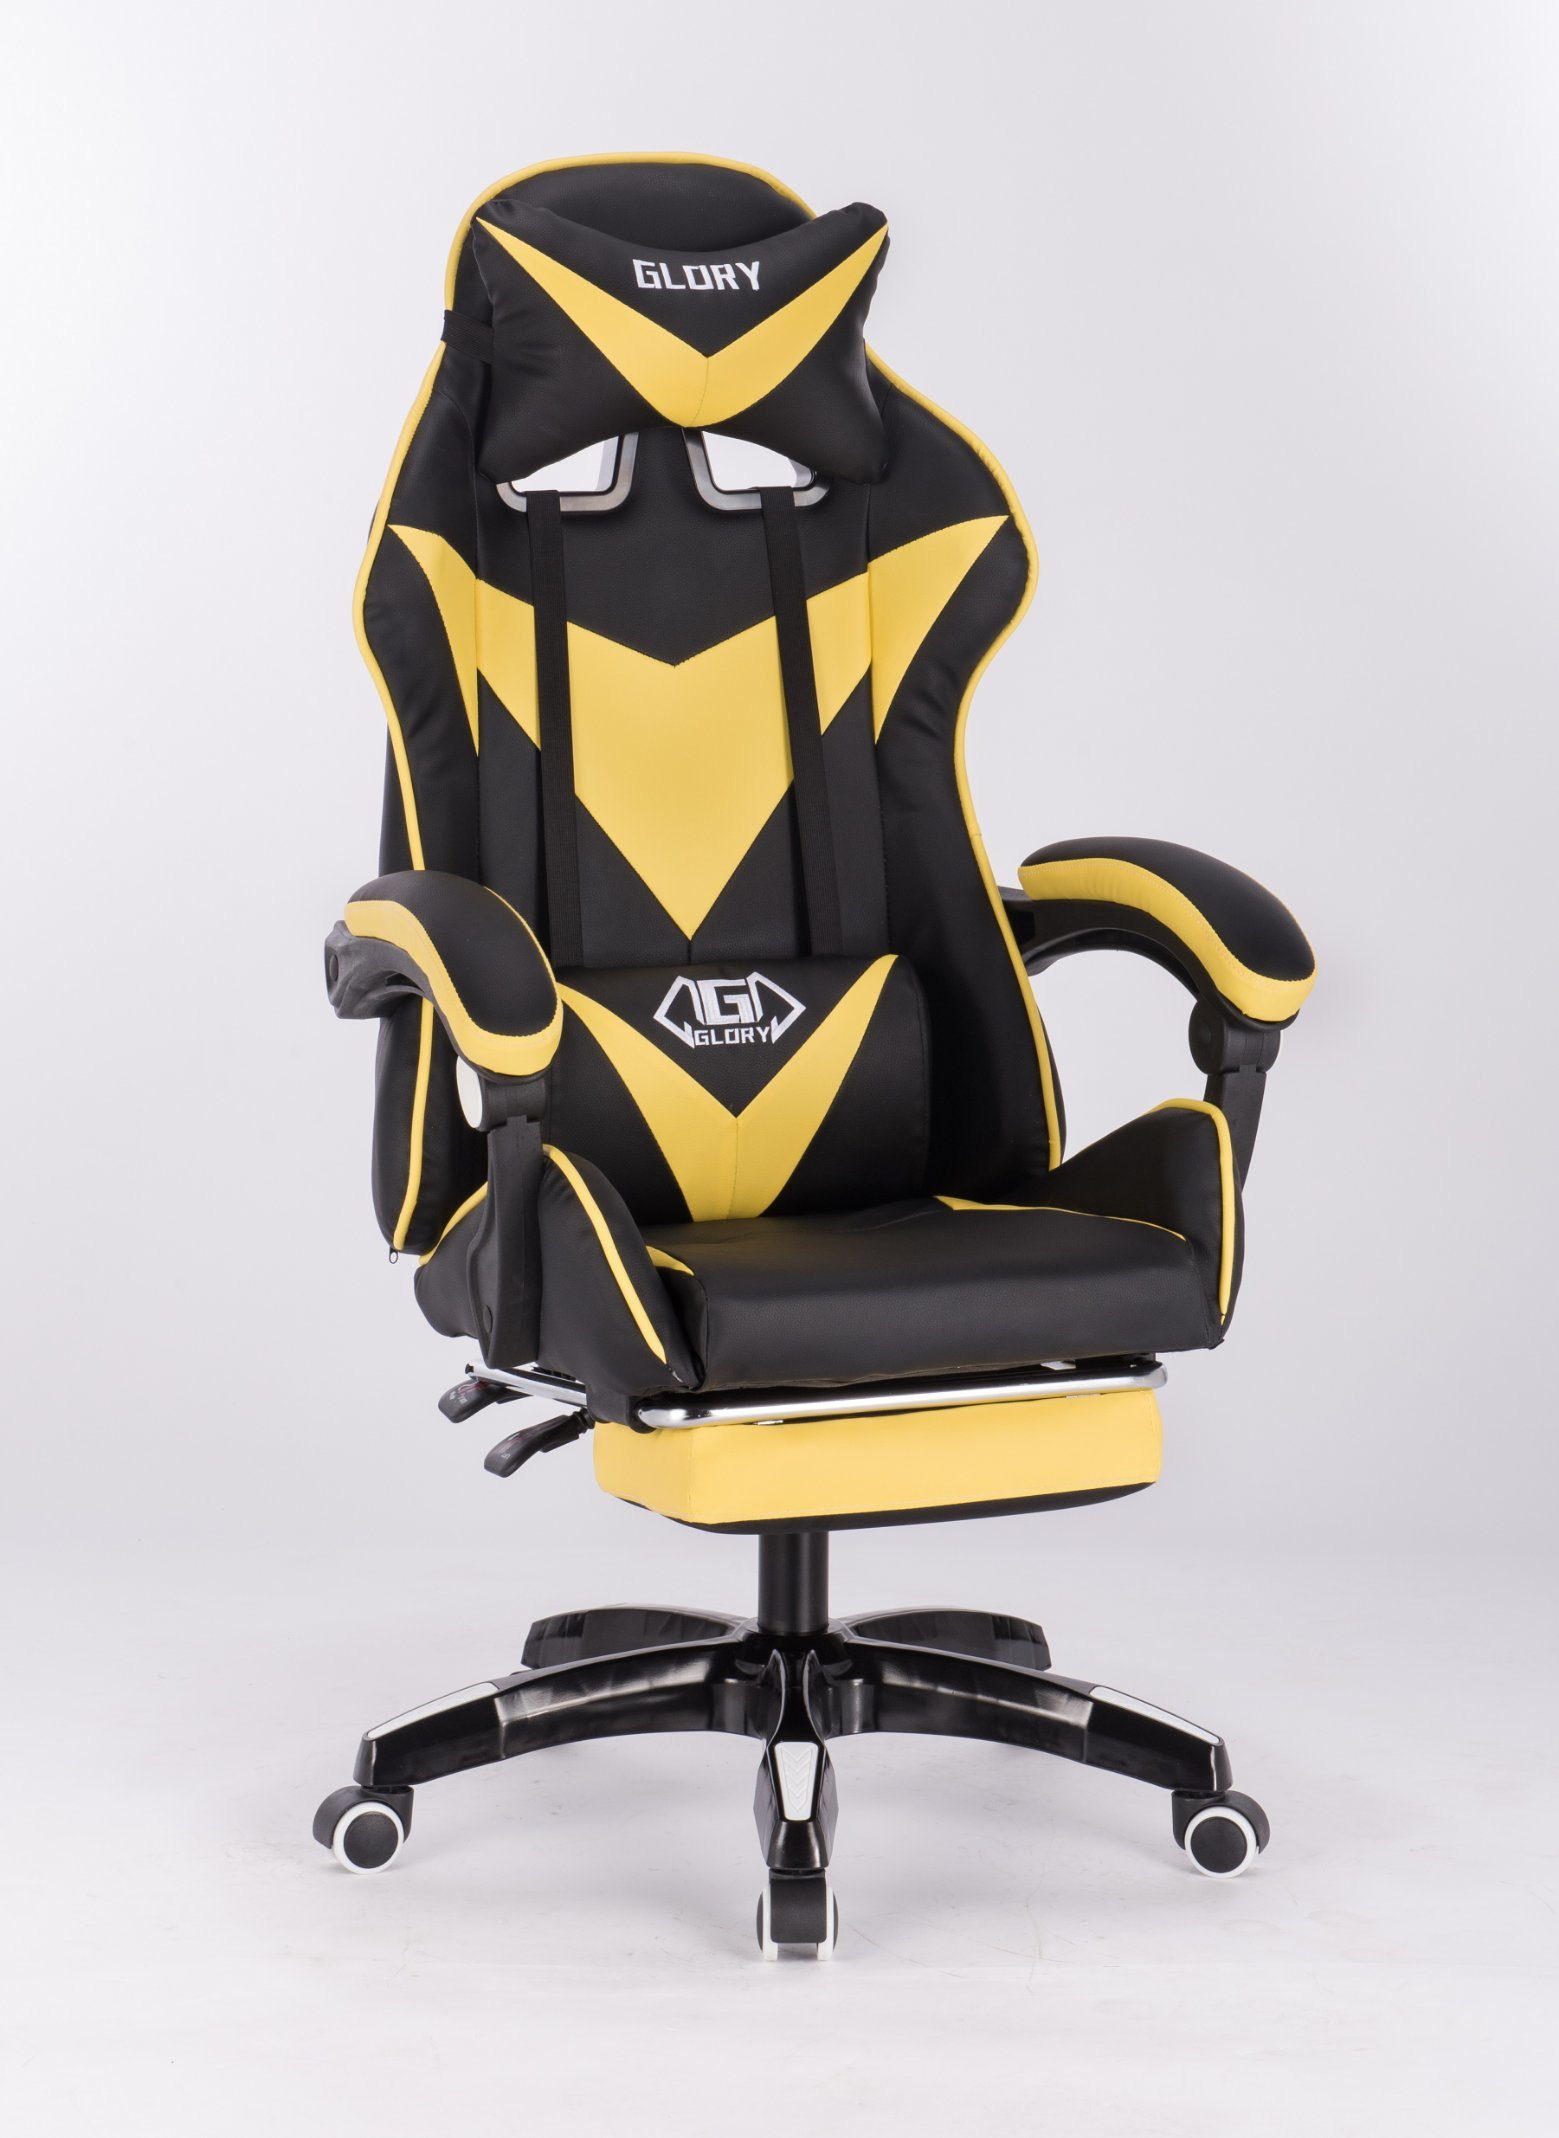 China Office Chair New Design Recliner Chair Gaming Chair Racing Chair Ergonomic Chair Modern Office Furniture 2019 Home Office China Office Chair Ergonomic Office Chair